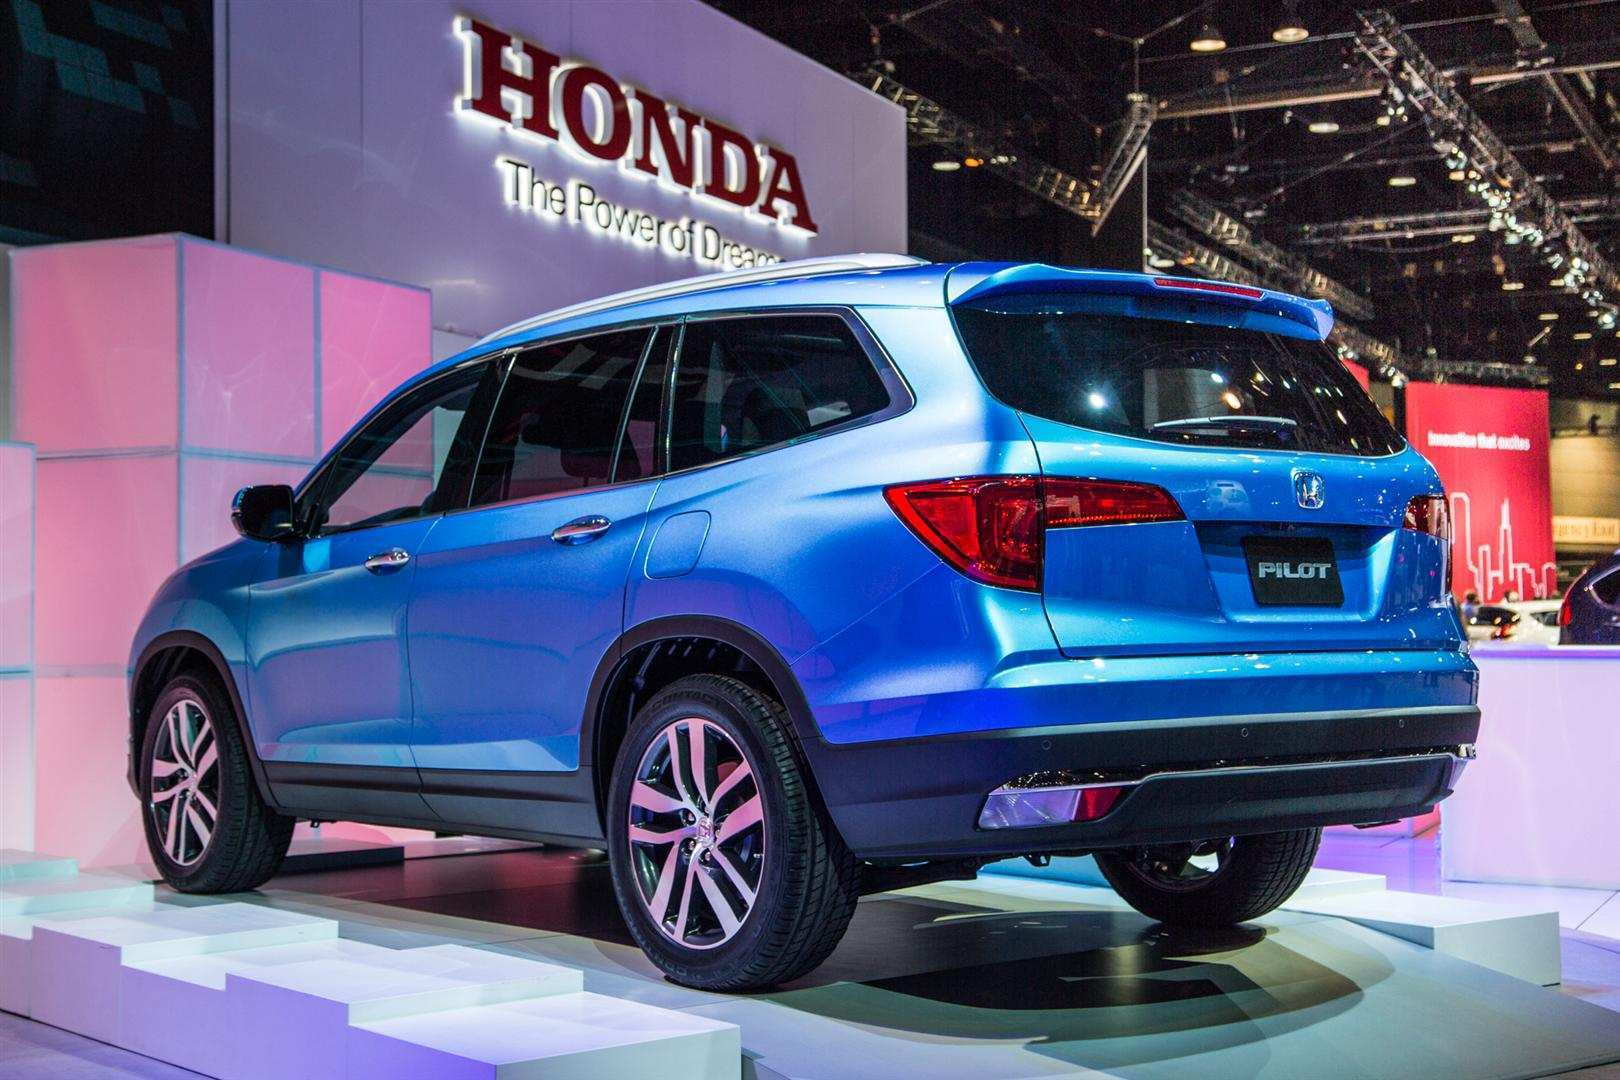 65 All New Honda Pilot 2020 Release Date Research New for Honda Pilot 2020 Release Date